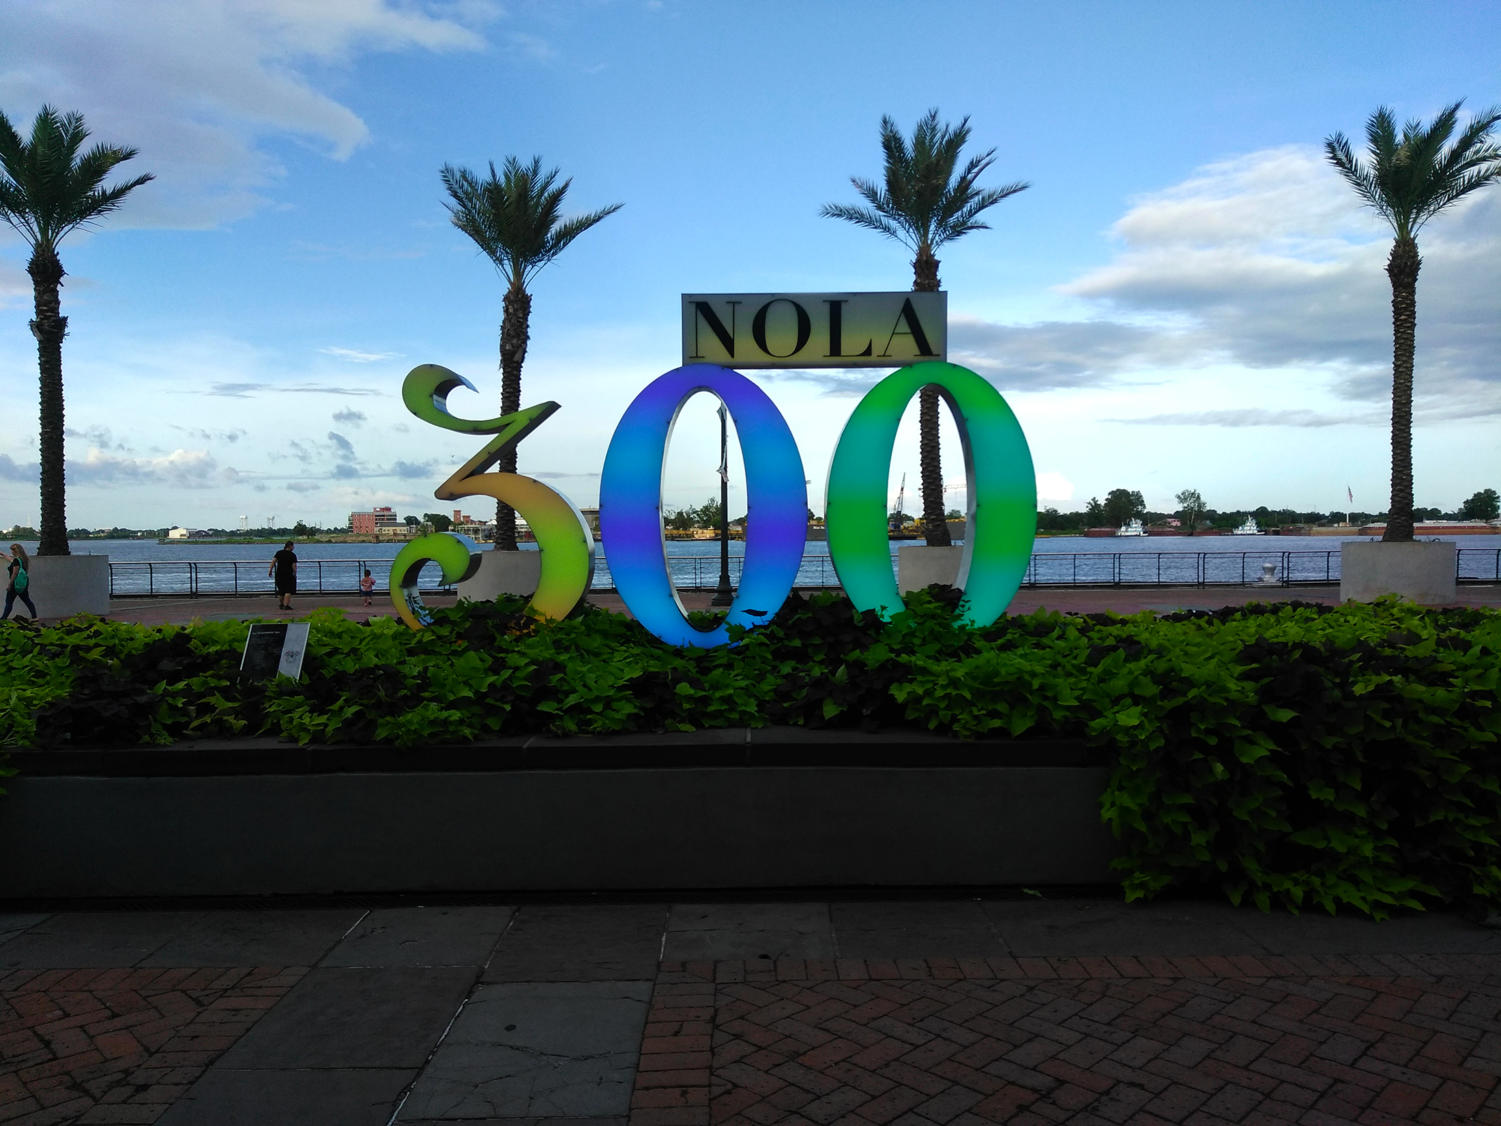 The New Orleans Tricentennial sign stands dry on Tuesday September 4, 2018 after tropical storm Gordon missed the downtown New Orleans area. Loyola reopened at 10:30 a.m. Wednesday morning after closing down on Tuesday. Photo credit: Cristian Orellana